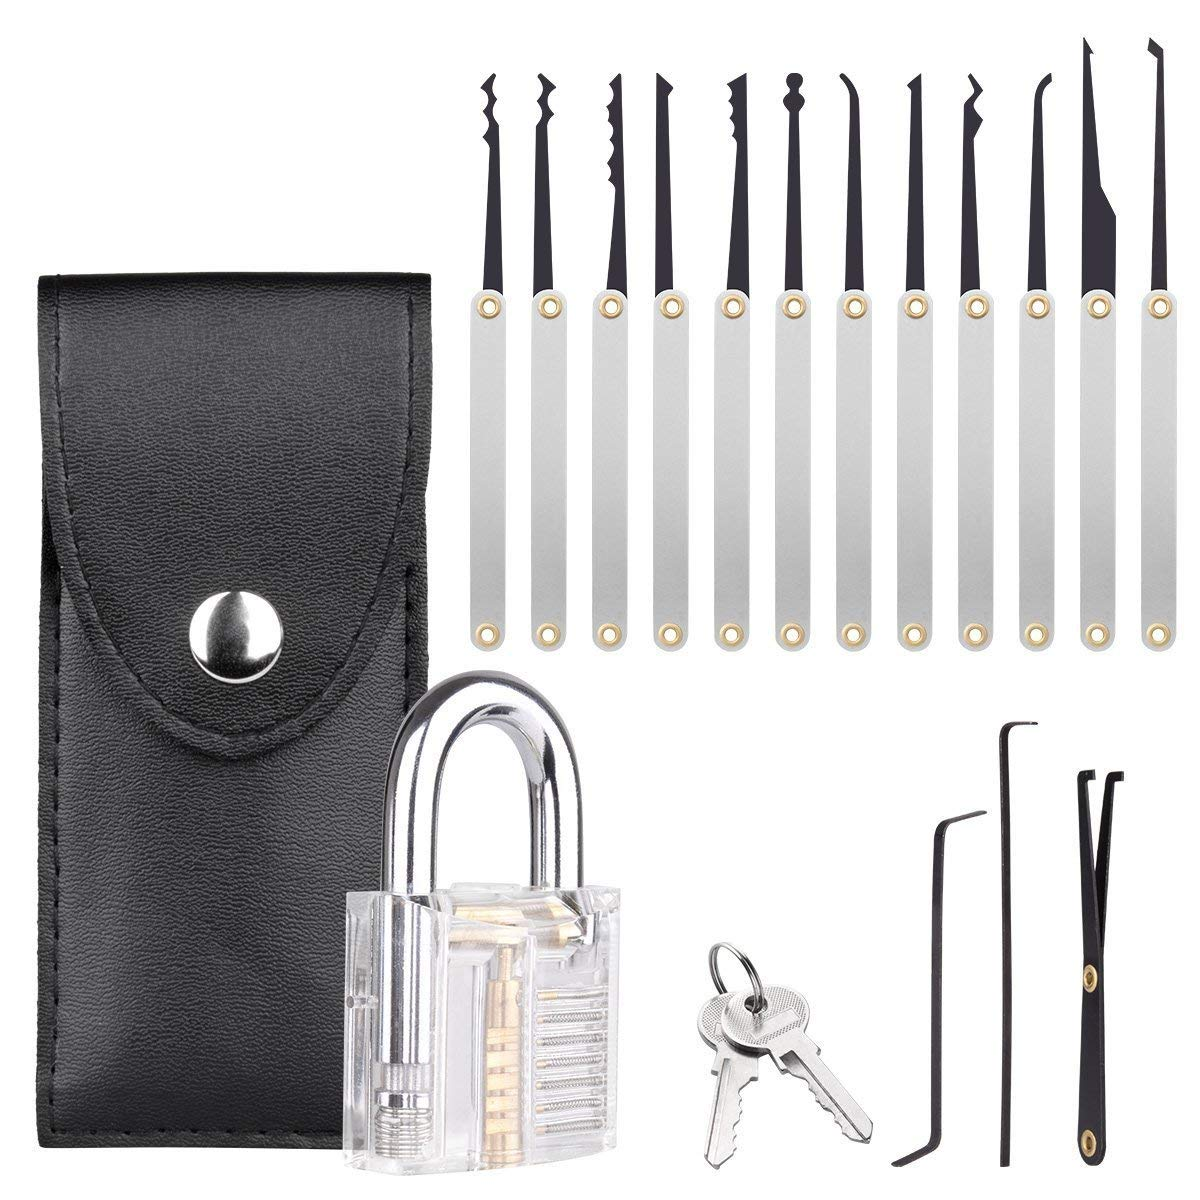 translucent lock pick set